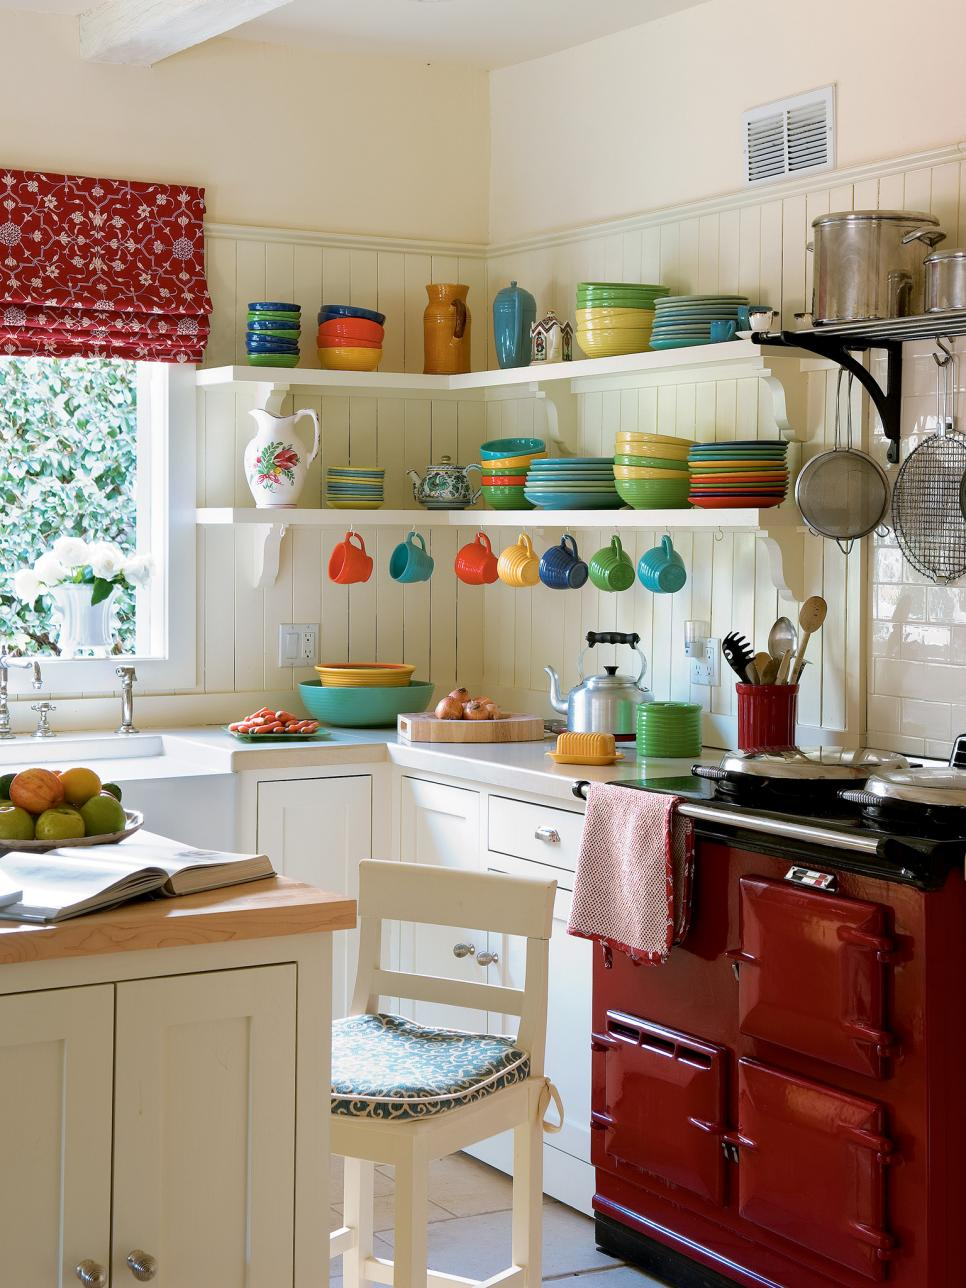 [+] Simple Small Kitchen Decorating Ideas